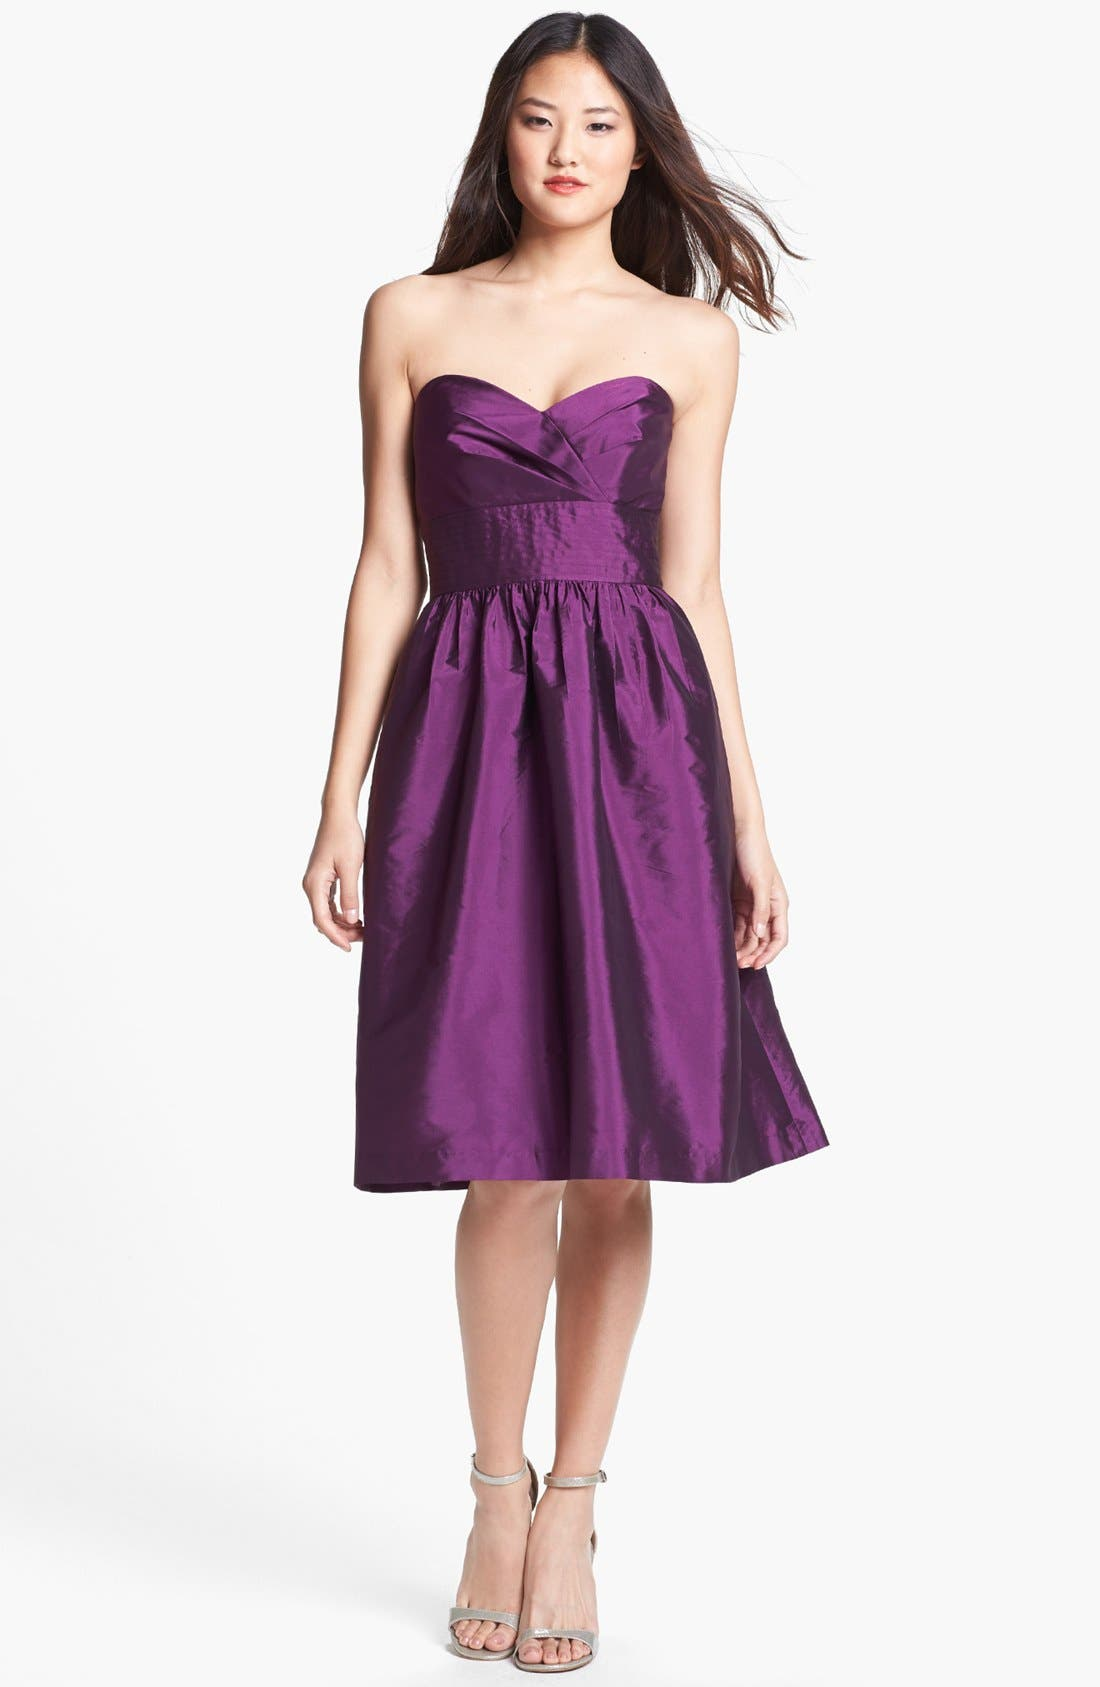 Alternate Image 1 Selected - Alfred Sung Strapless Satin Fit & Flare Dress